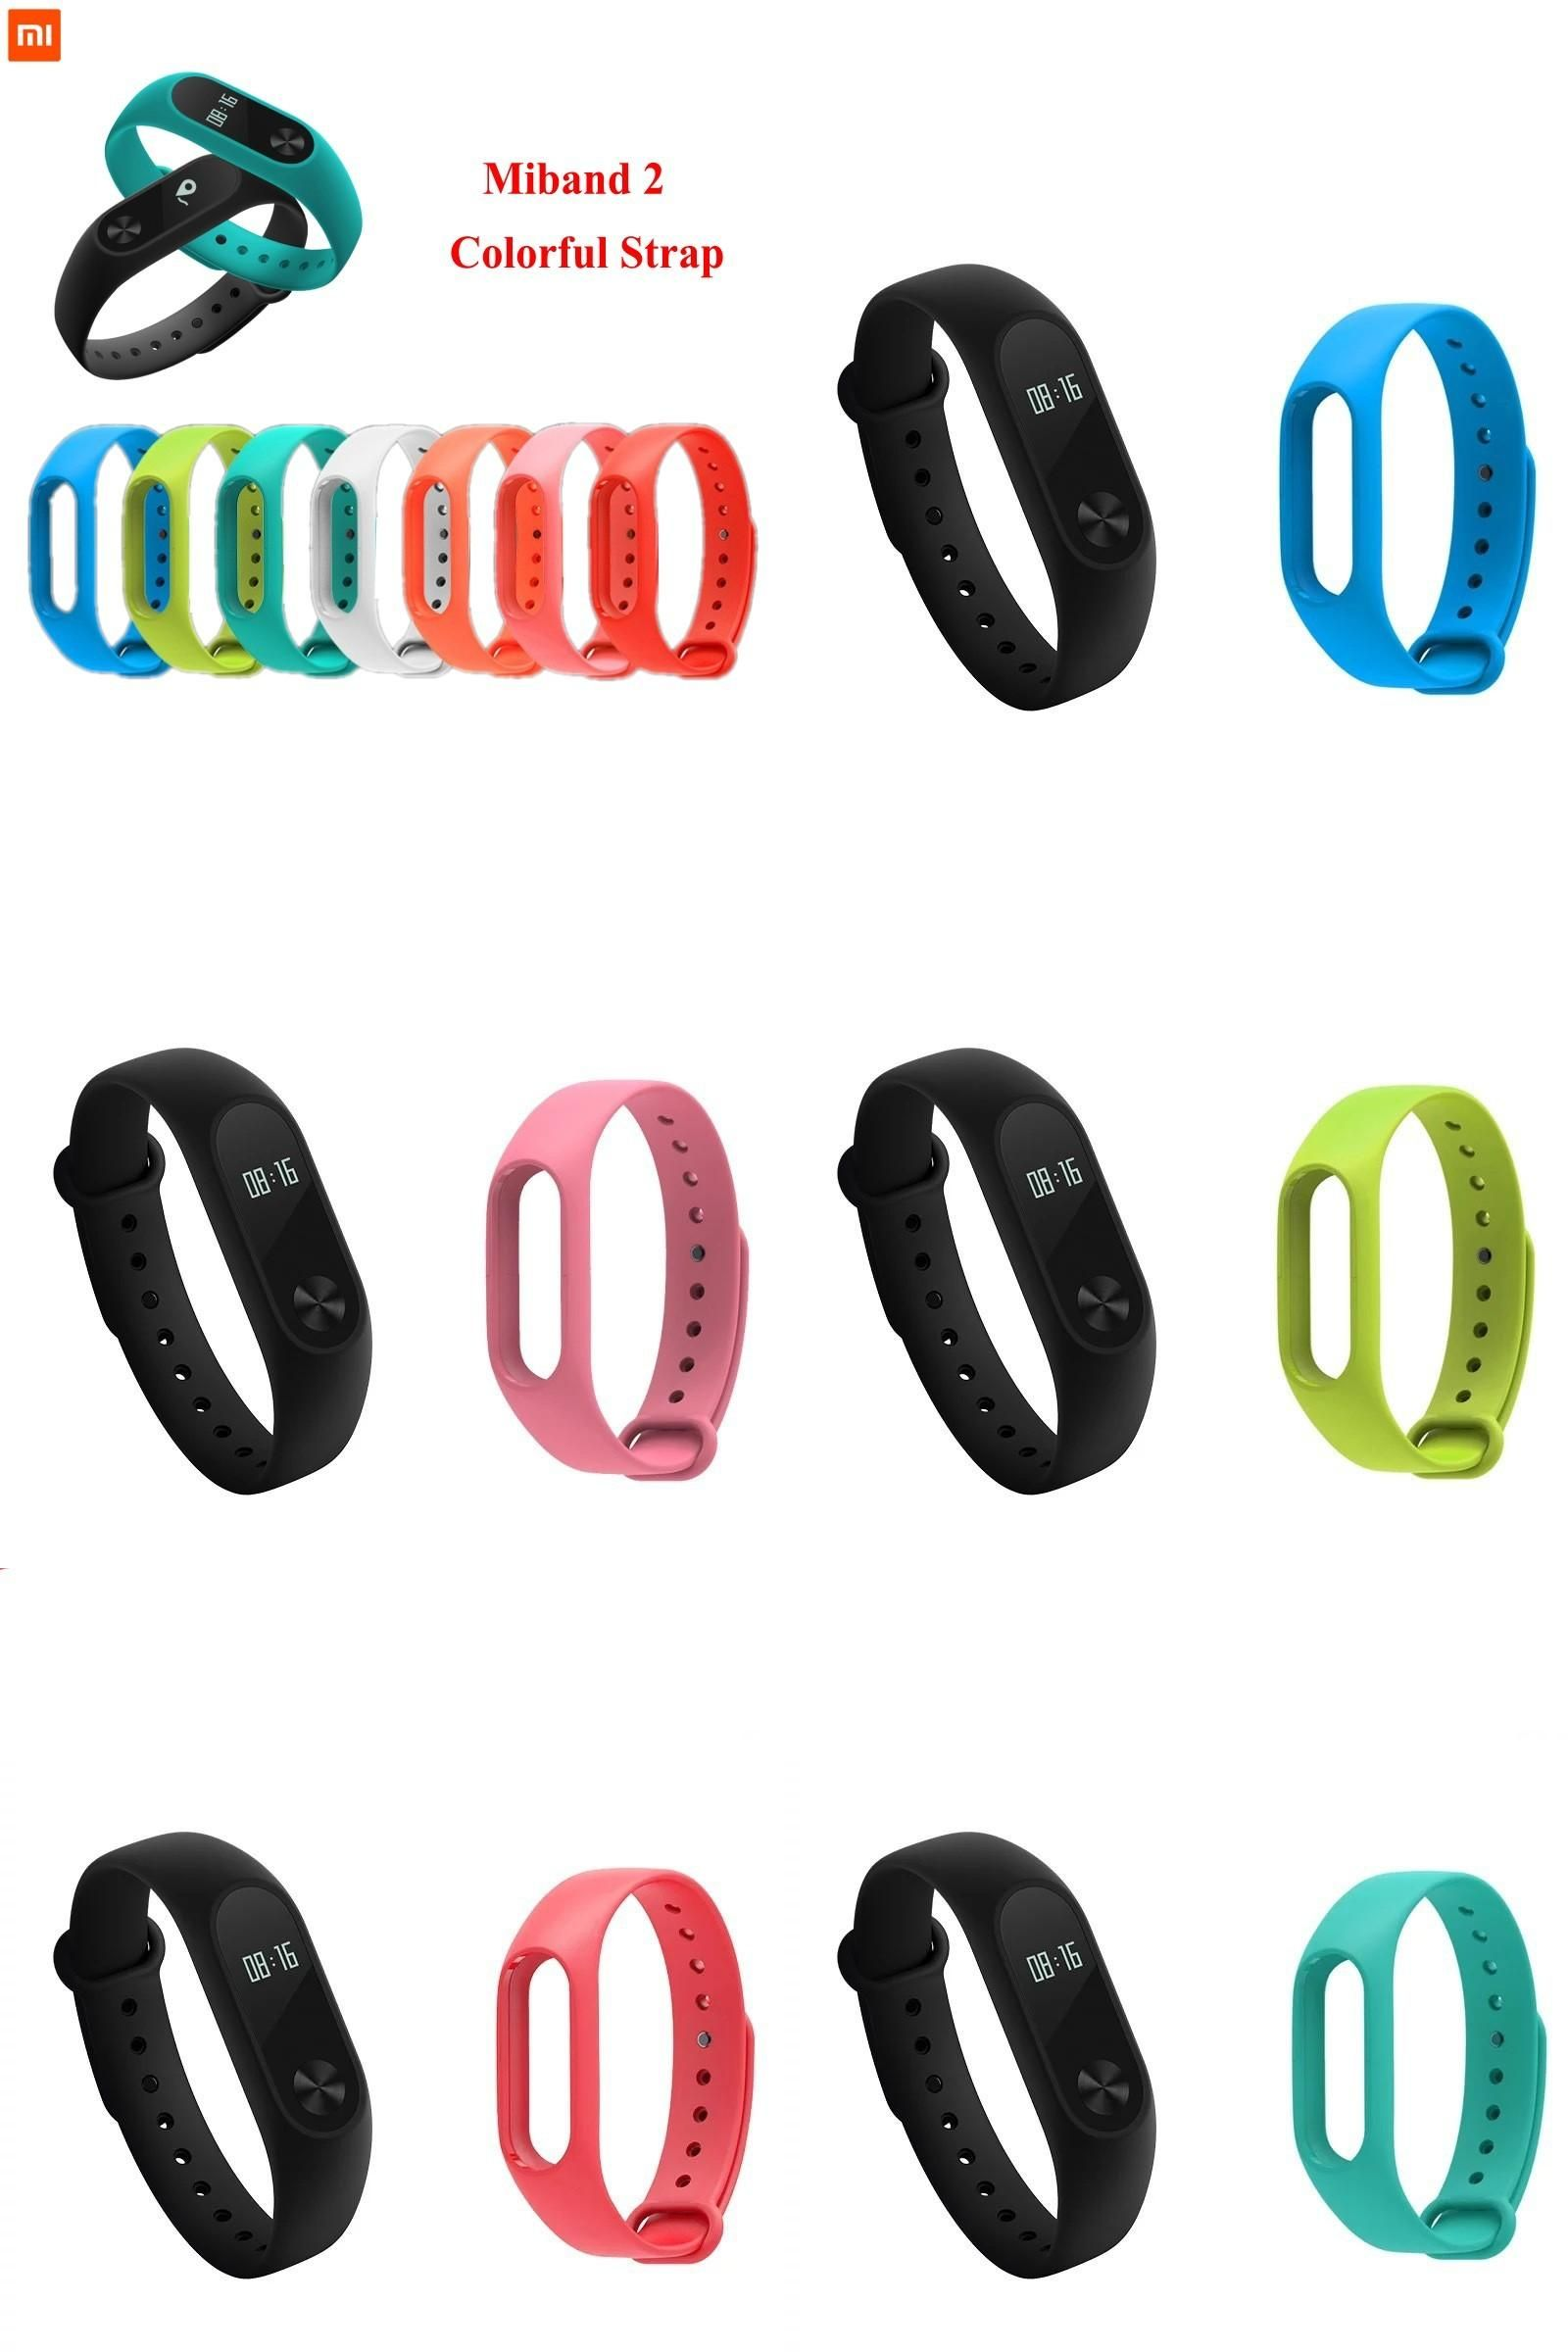 Visit To Buy Xiaomi Mi Band 2 Bracelet Strap Miband 2 Colorful Strap Wristband Replacement Smart Band Accessories For Mi B Smart Band Silicon Bands Wristband